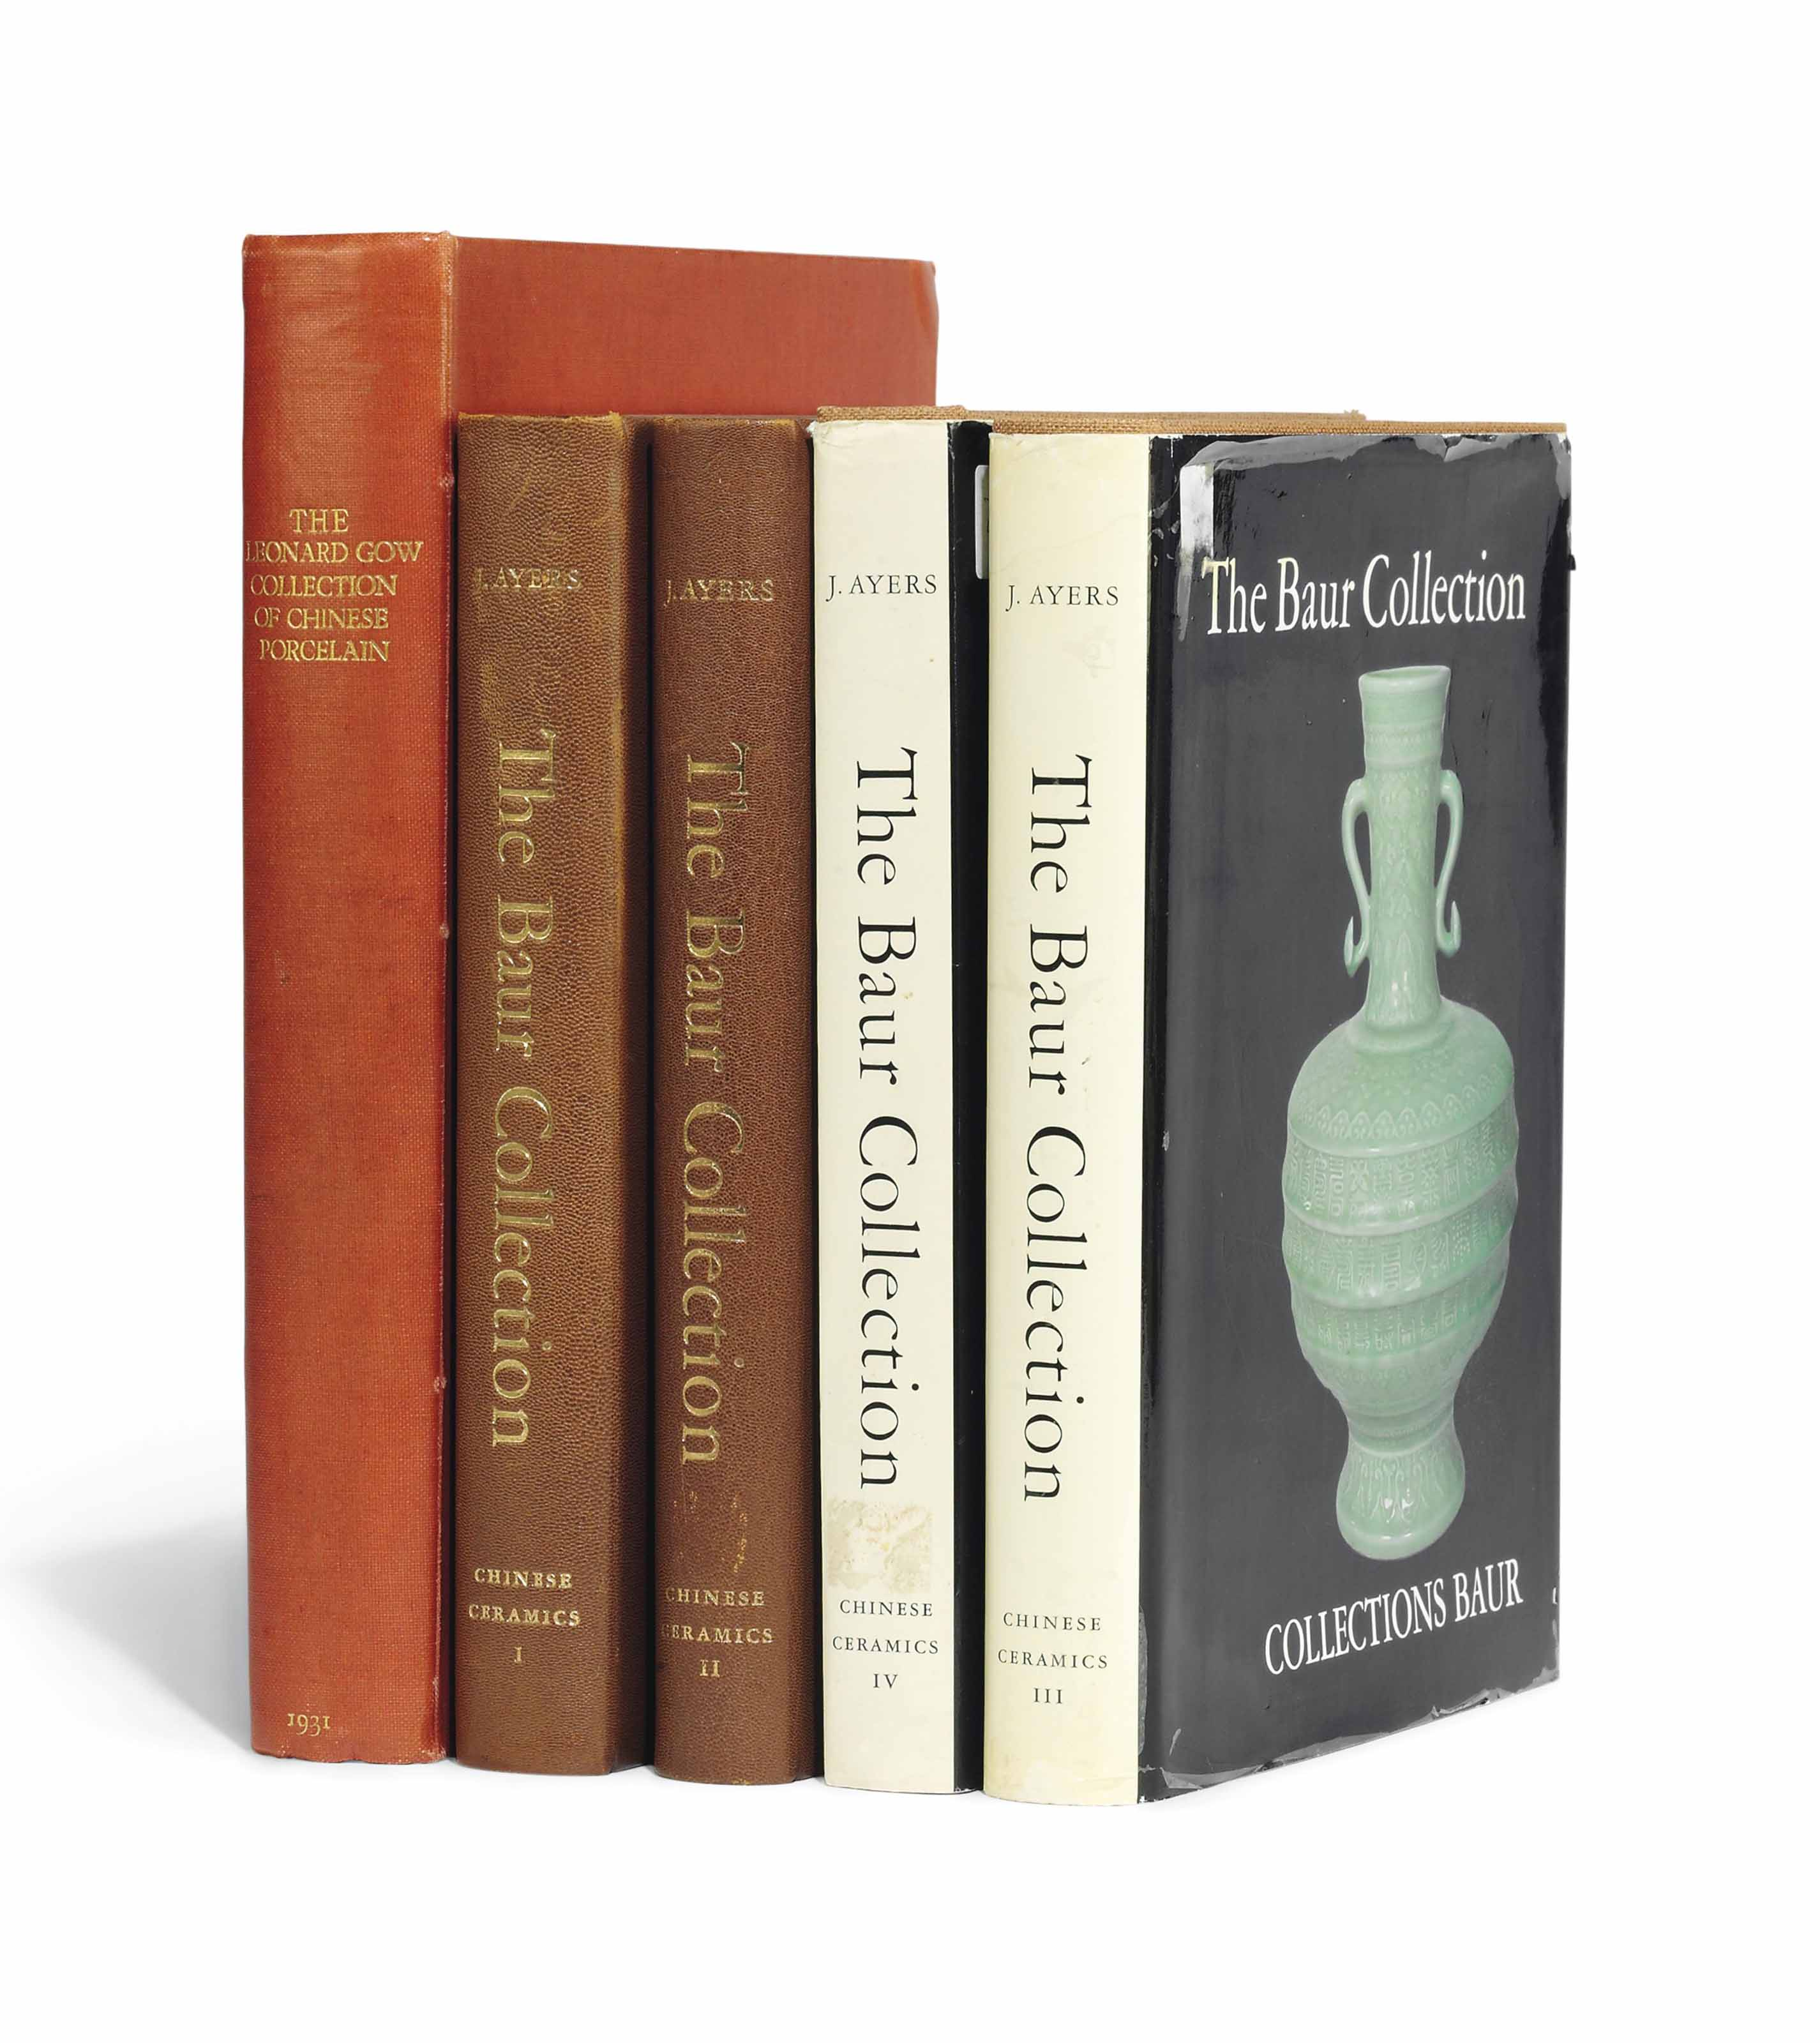 HOBSON, R.L. The Catalogue of The Leonard Gow Collection of Chinese Porcelain, London, 1931, printed by George W.Jones at The Sign of the Dolphin, 1931, numerous colour photographic plates, original cloth; AYERS J., The Baur Collection Geneva, Chinese Ceramics Vols I-V, Geneva, 1968-74, C.F.Pezotti, 1968-74, four volumes, two dust jackets, numerous photographic plates